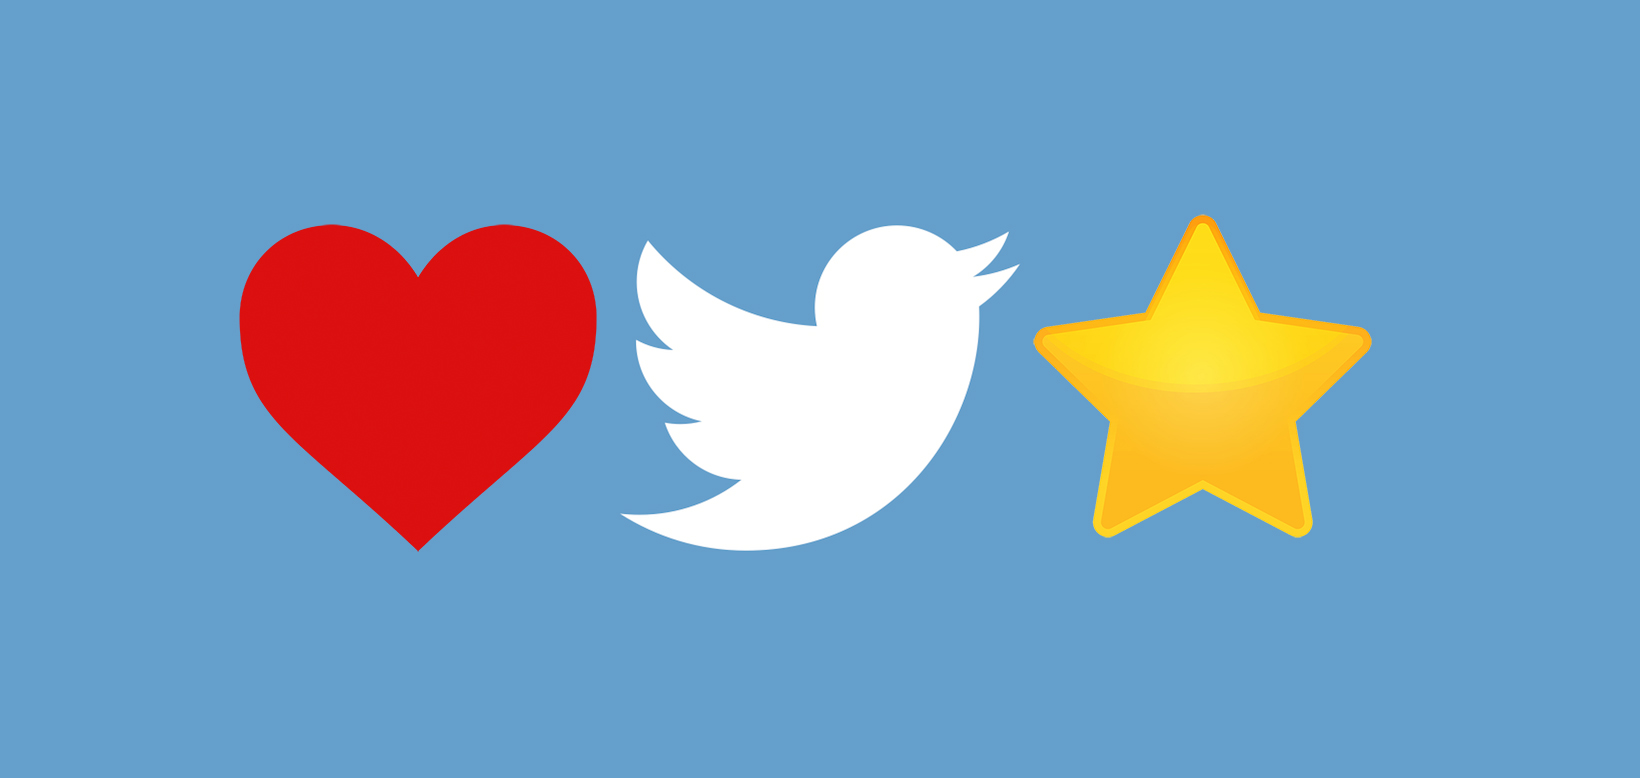 Is Twitter dividing its userbase over hearts and stars?